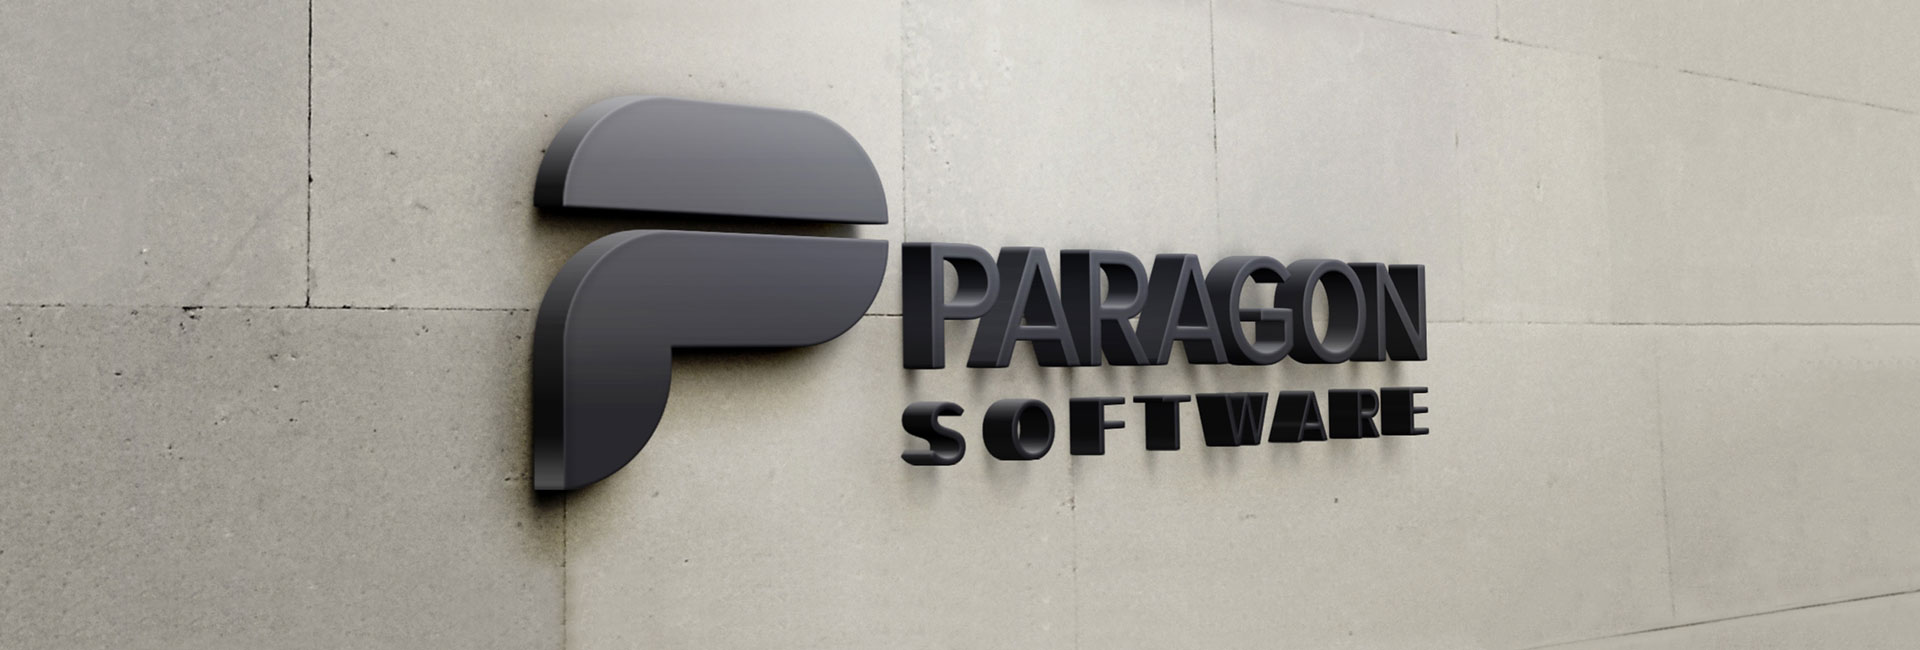 www.paragon-software.com